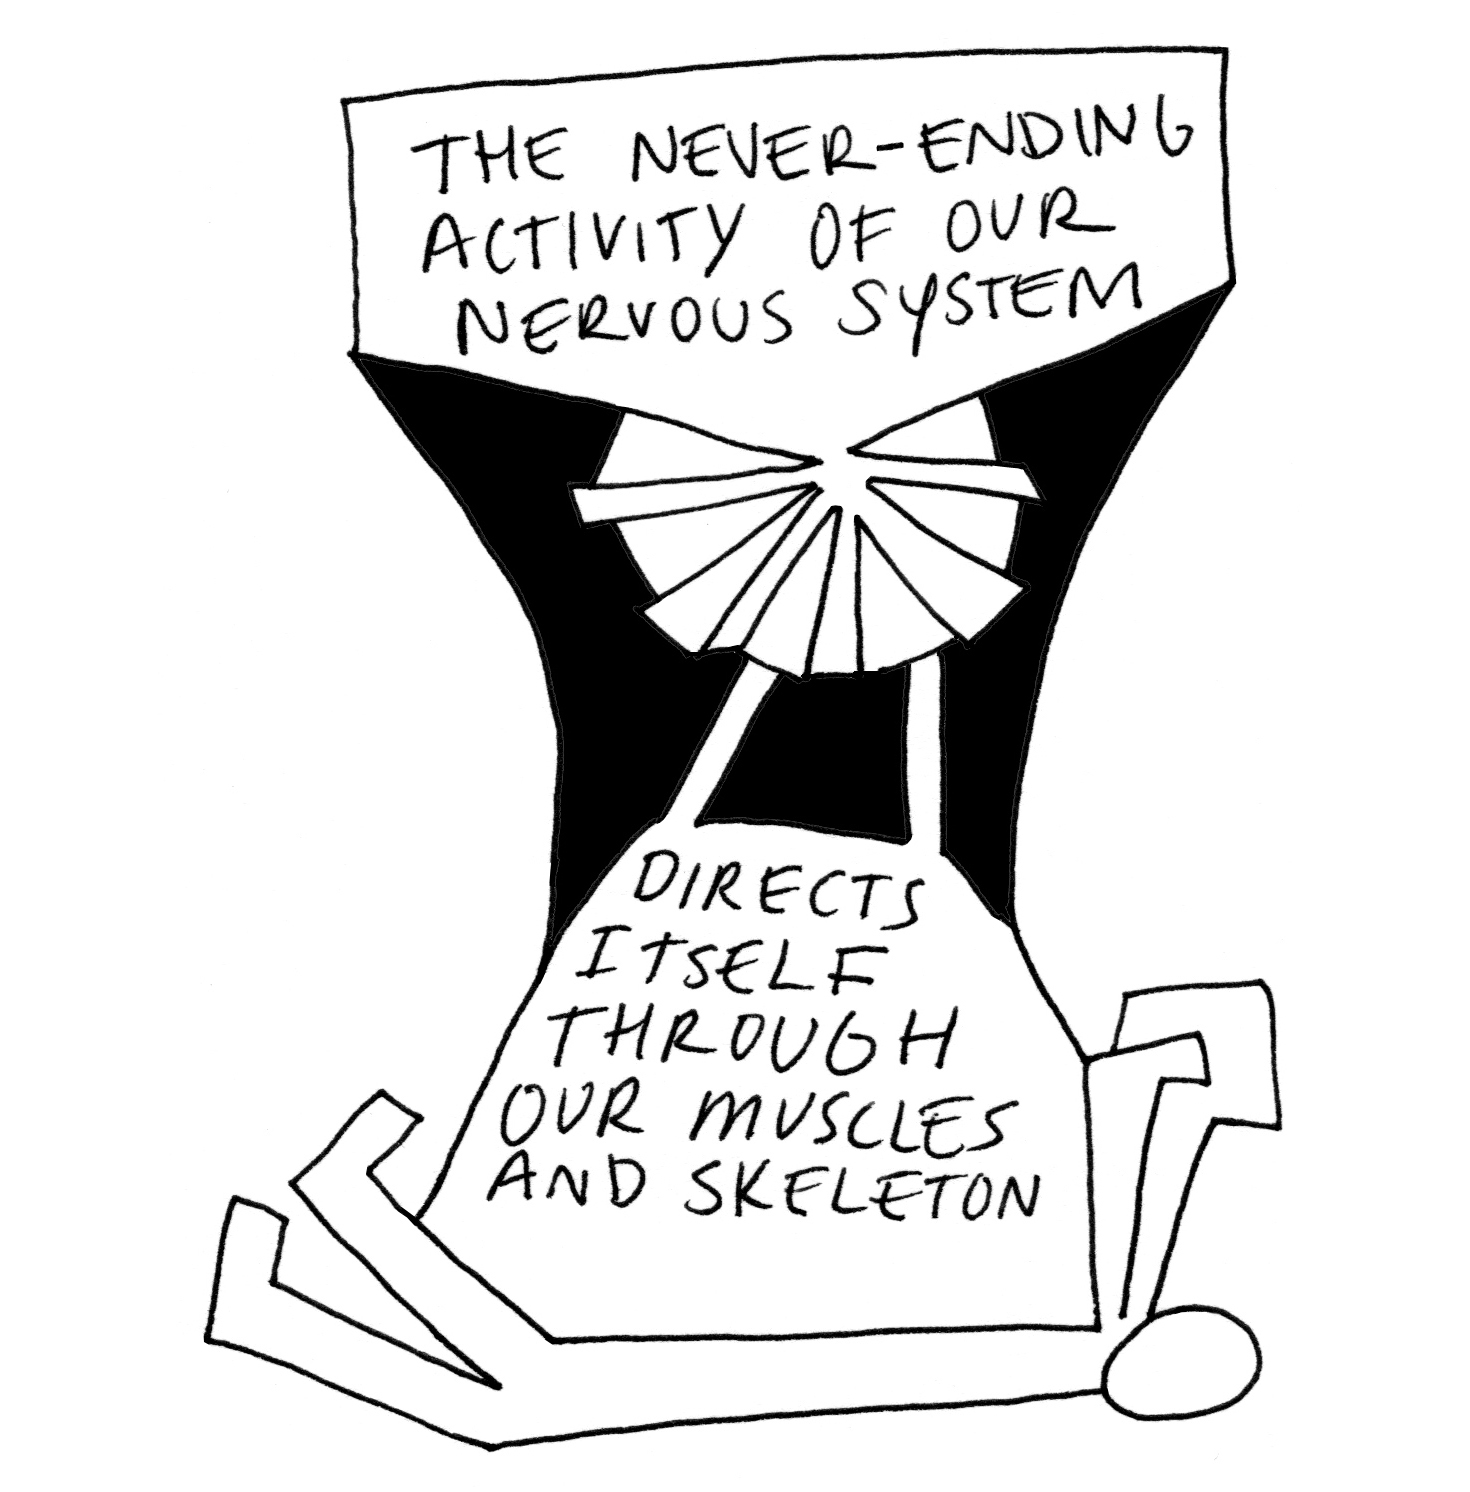 11 the neverending activity of our nervous system - C2 square.jpg